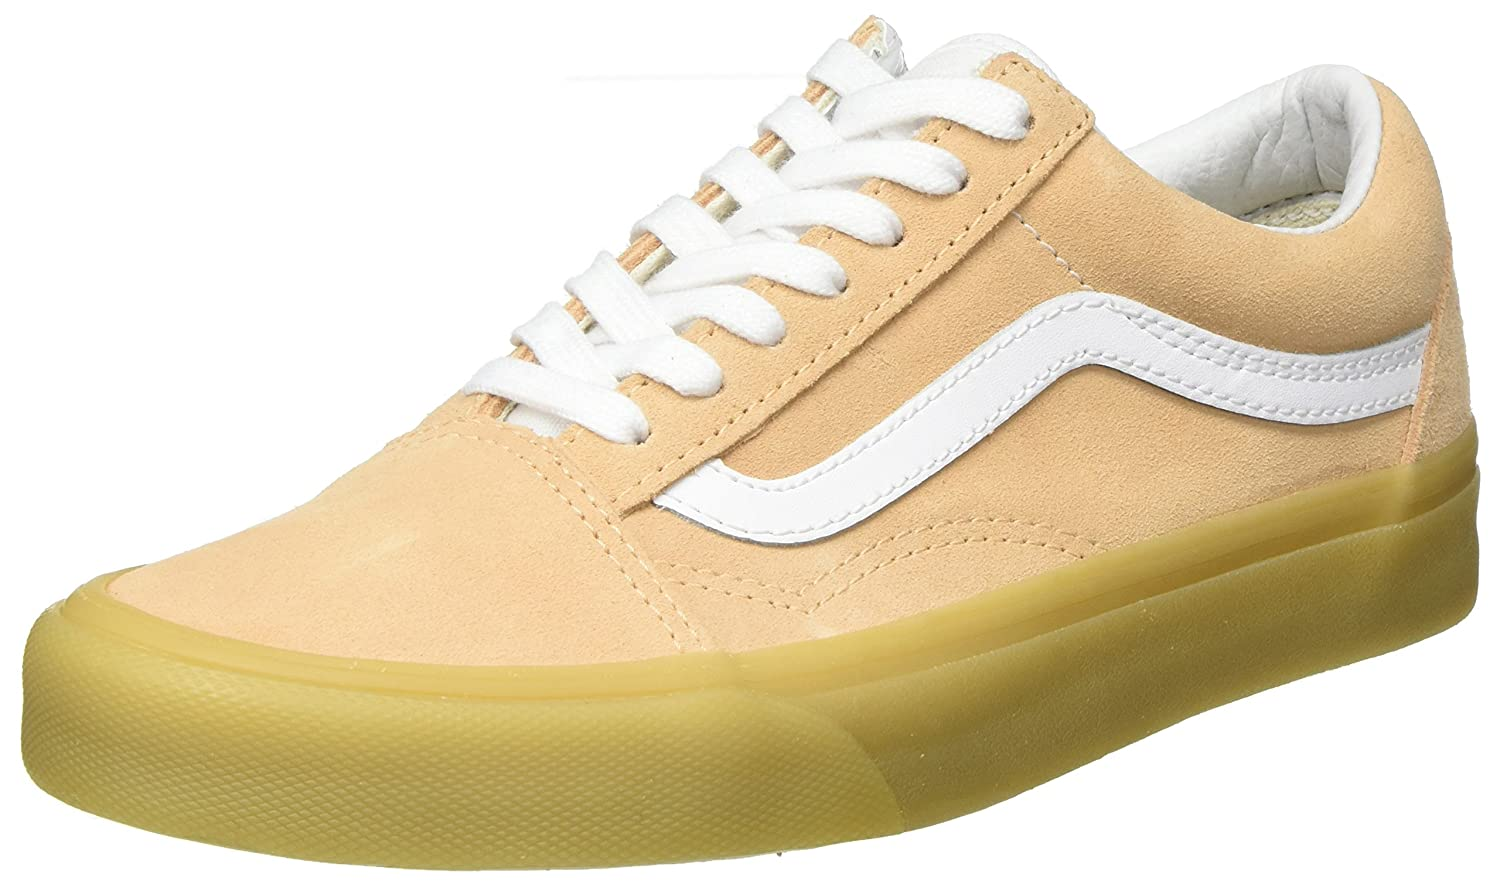 TALLA 36.5 EU. Vans Old Skool, Zapatillas Unisex Adulto